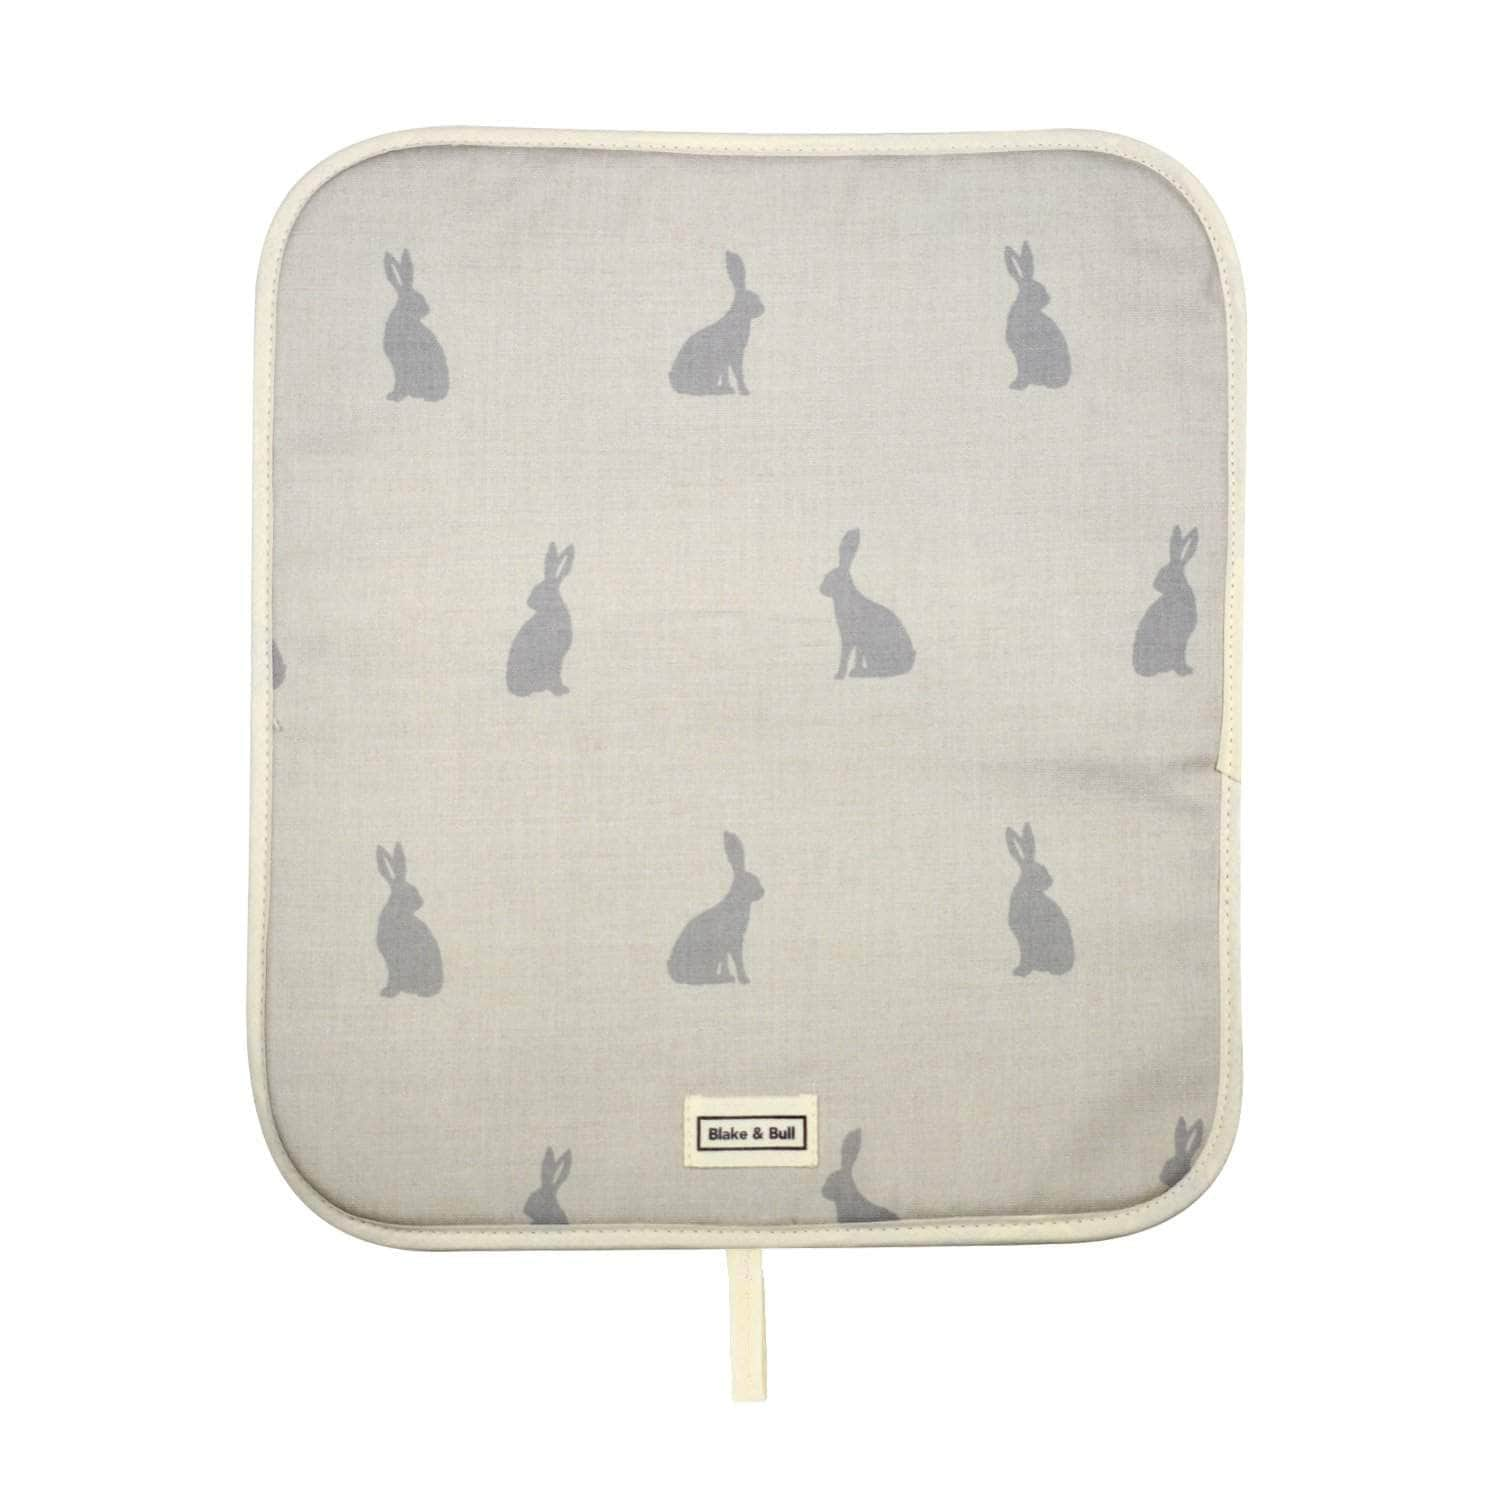 *Not quite perfect* Warming plate cover for use with Aga range cookers - 'Hare today'